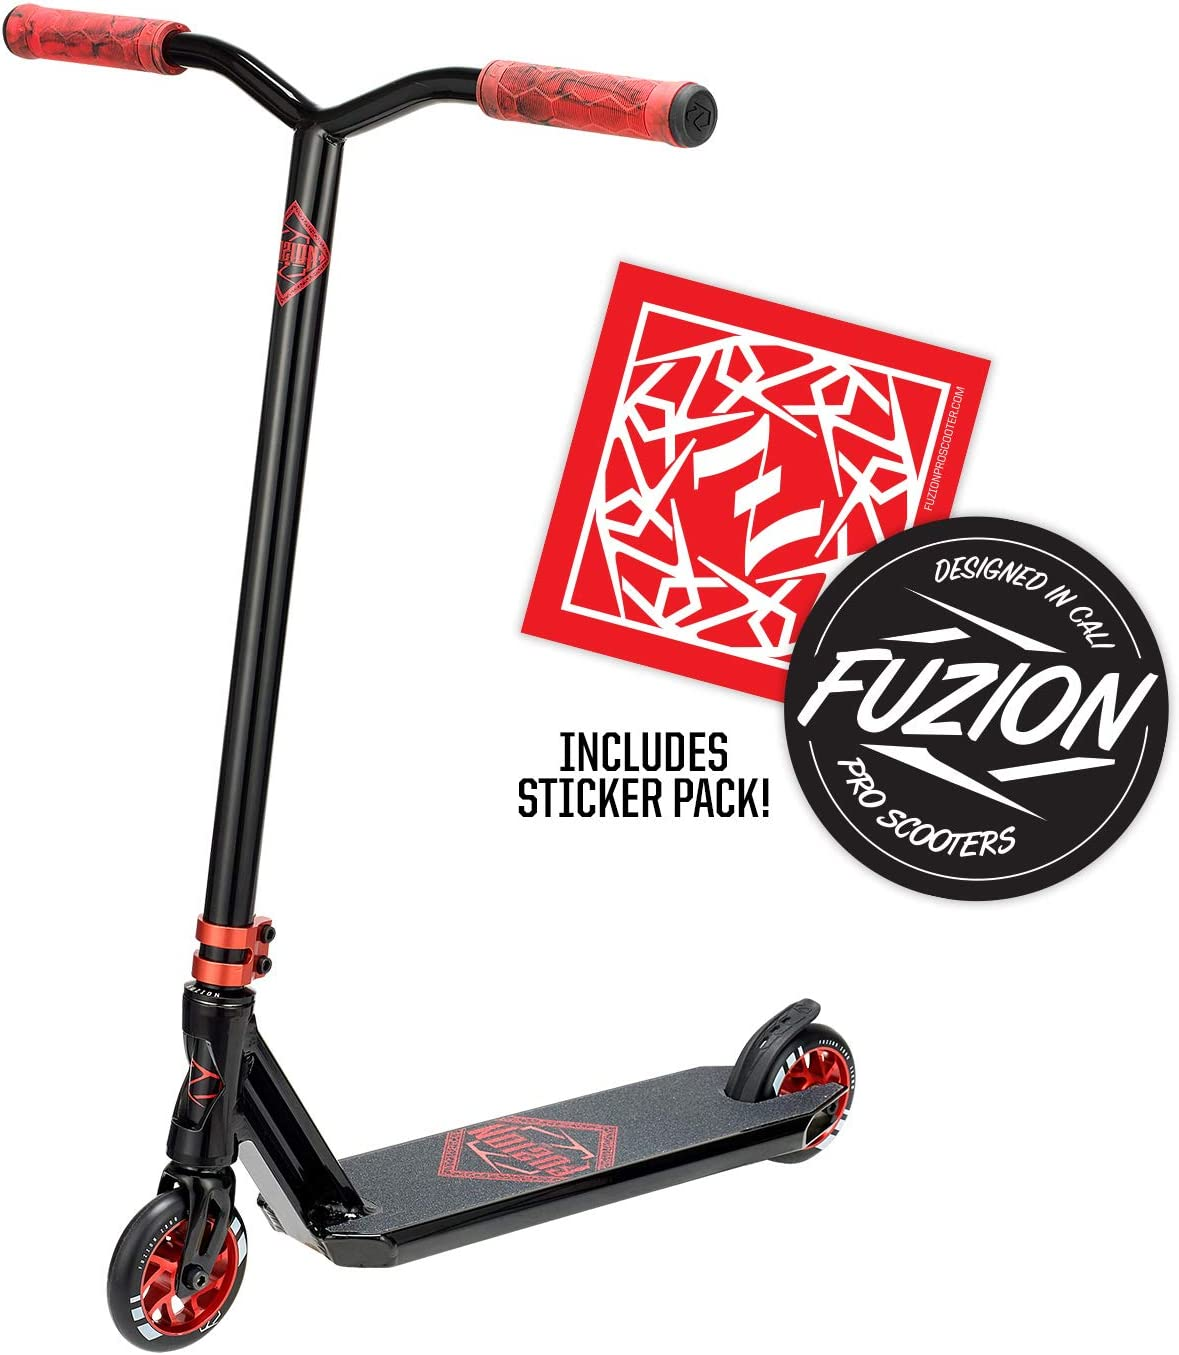 Fuzion Z300 Pro Scooter Complete Trick Scooter / US